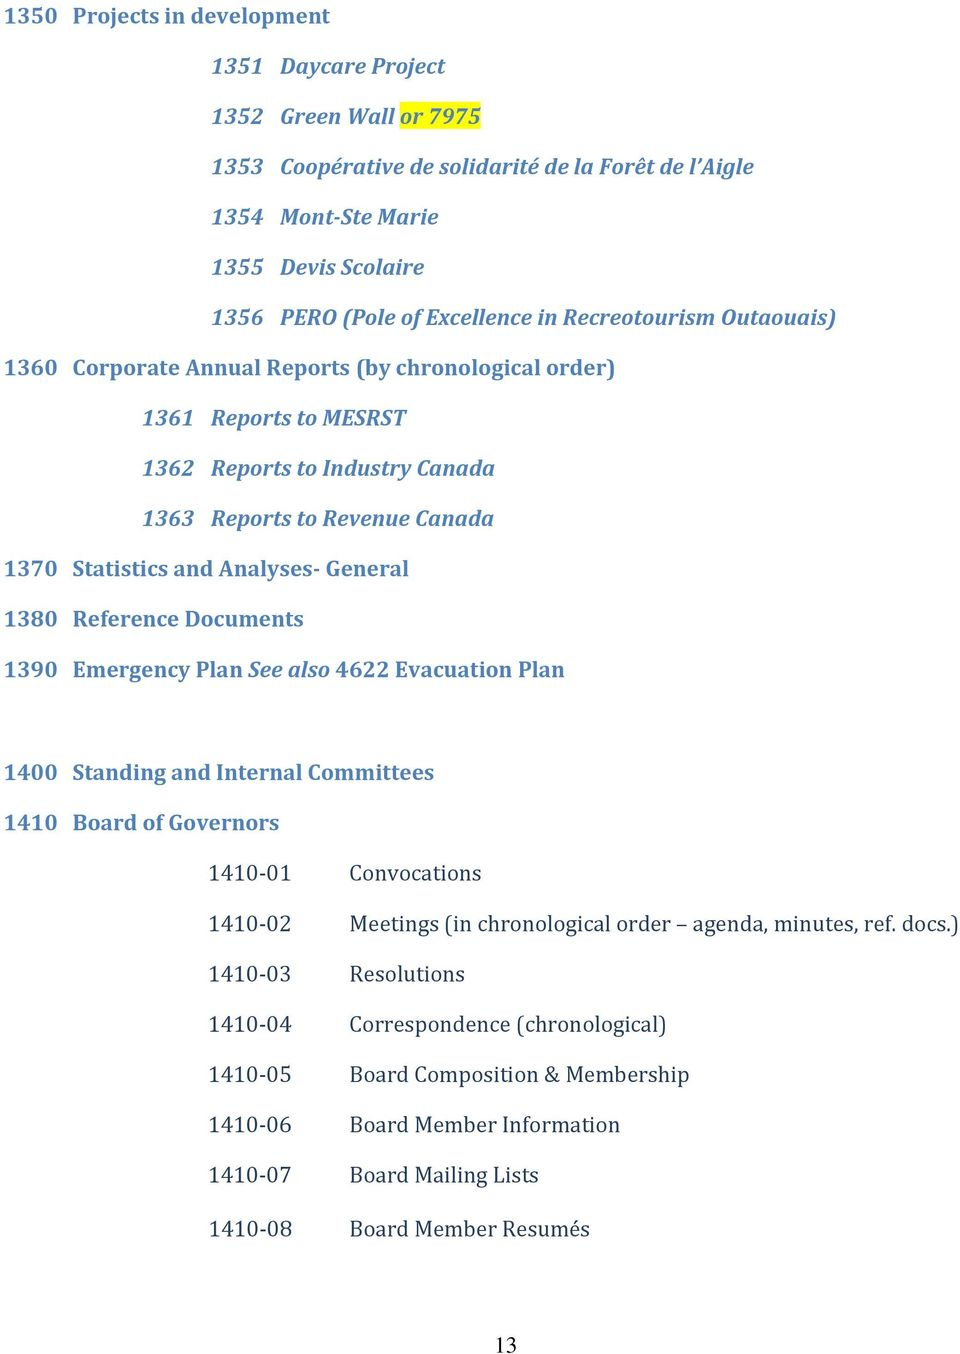 General 1380 Reference Documents 1390 Emergency Plan See also 4622 Evacuation Plan 1400 Standing and Internal Committees 1410 Board of Governors 1410-01 Convocations 1410-02 Meetings (in